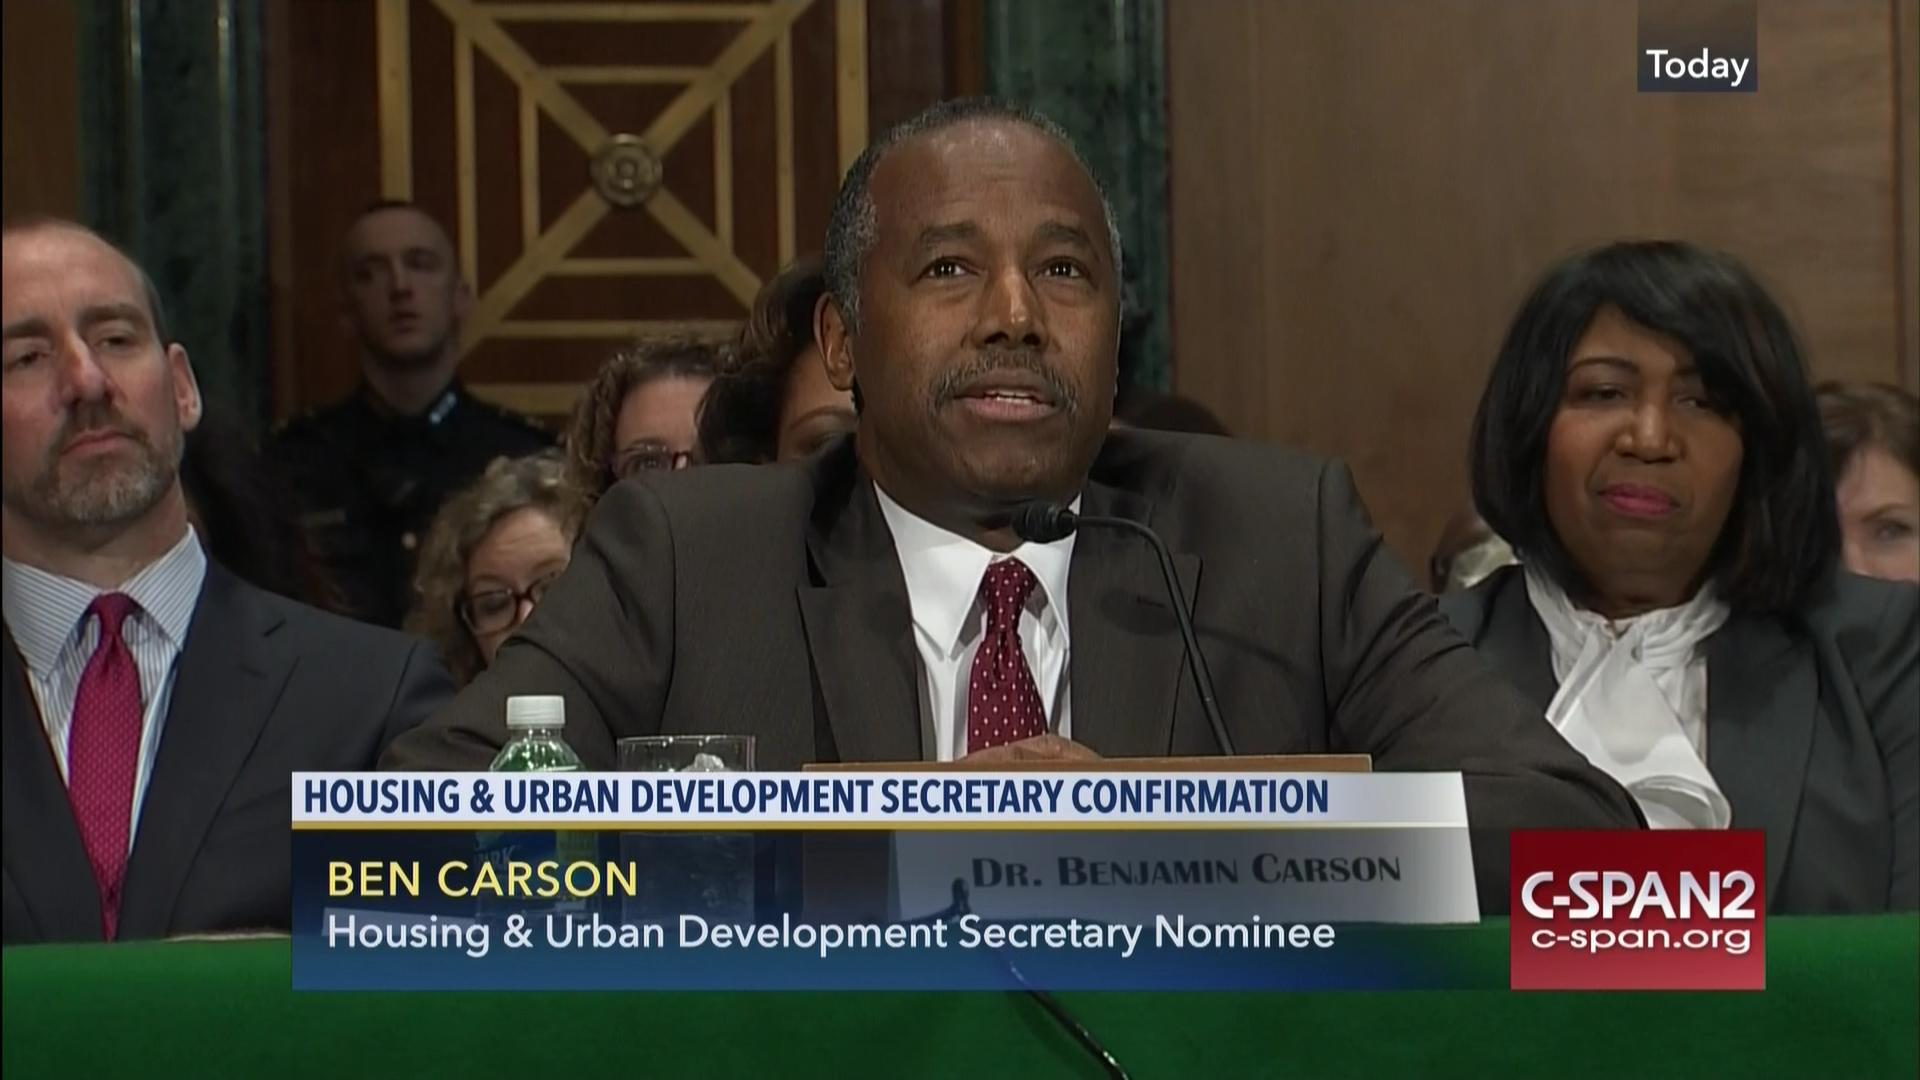 hud secretary dr ben carson addresses housing conference, apr 3